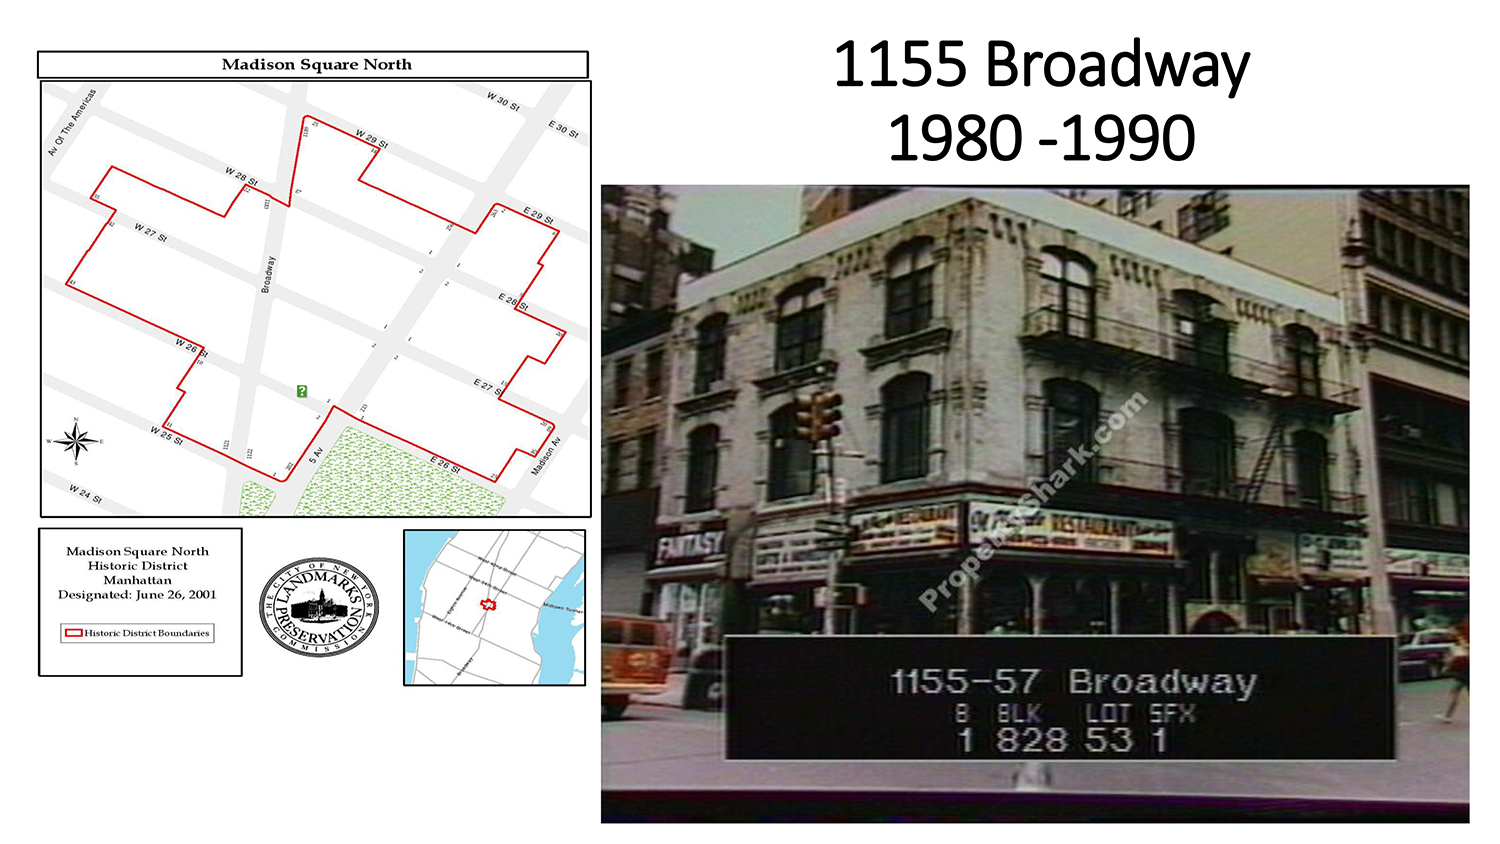 1155 Broadway Canopy Signage